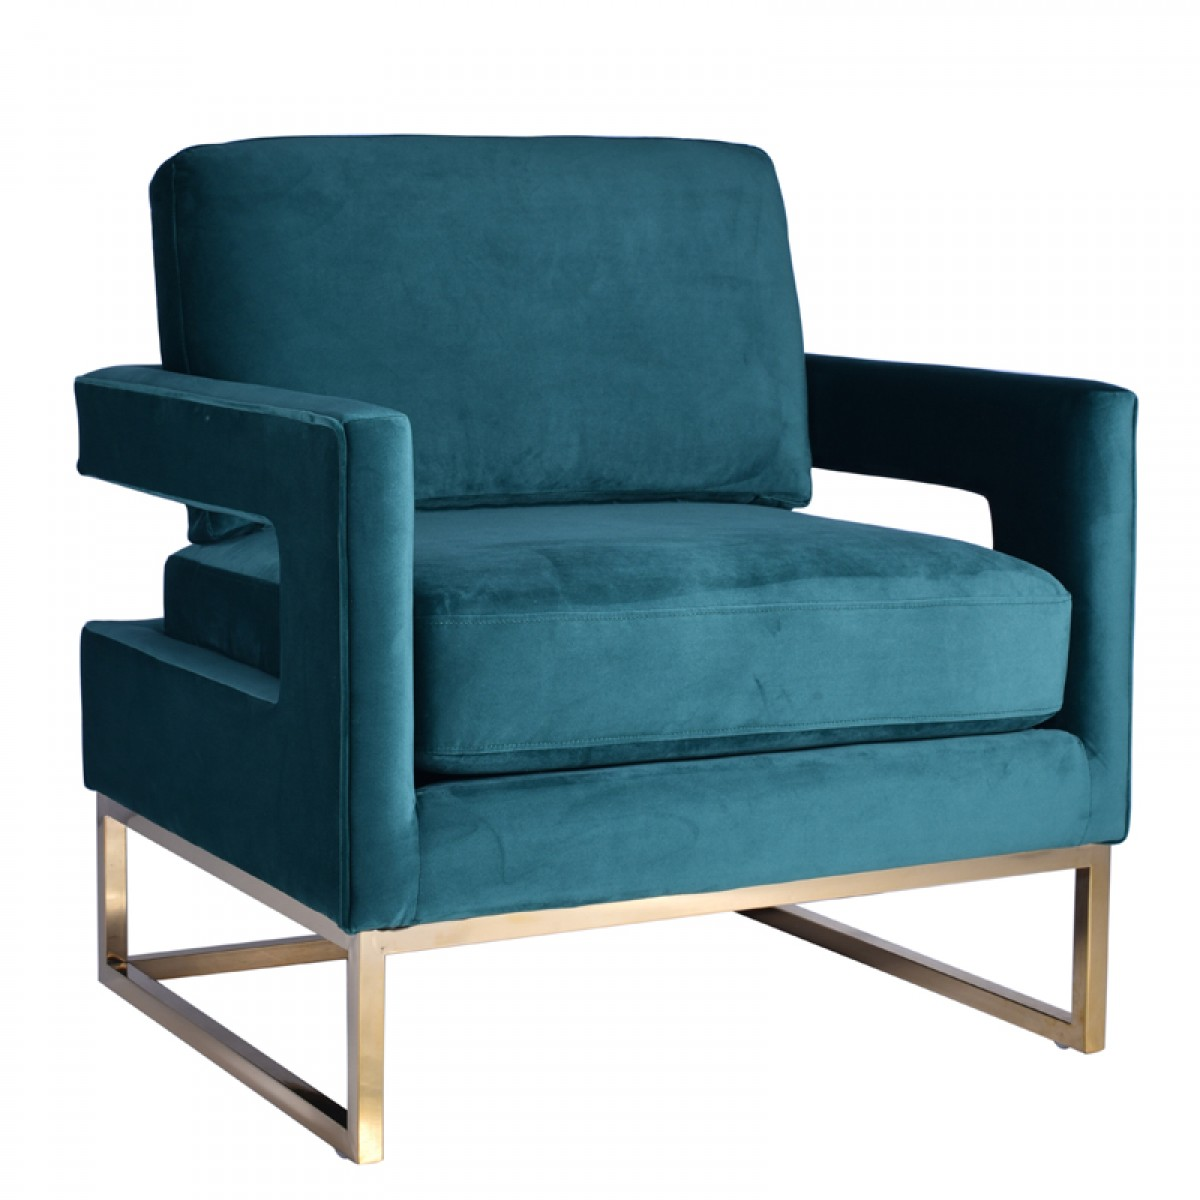 Modrest Edna Modern Teal Velvet & Gold Accent Chair